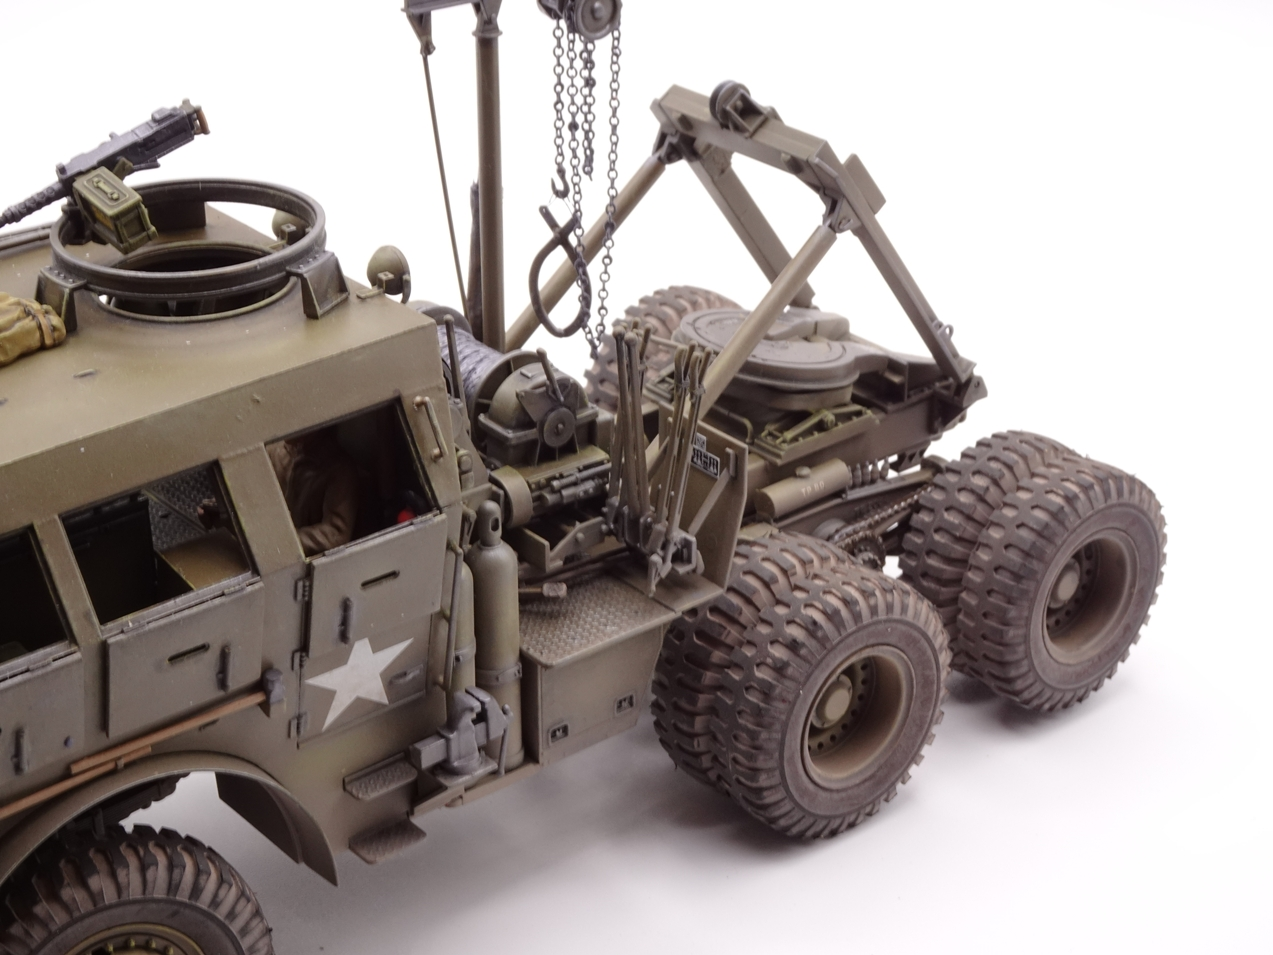 [Tamiya 1/35] M26 Armored tank recovery vehicle réf. 35244 - Page 4 M26-fin-7